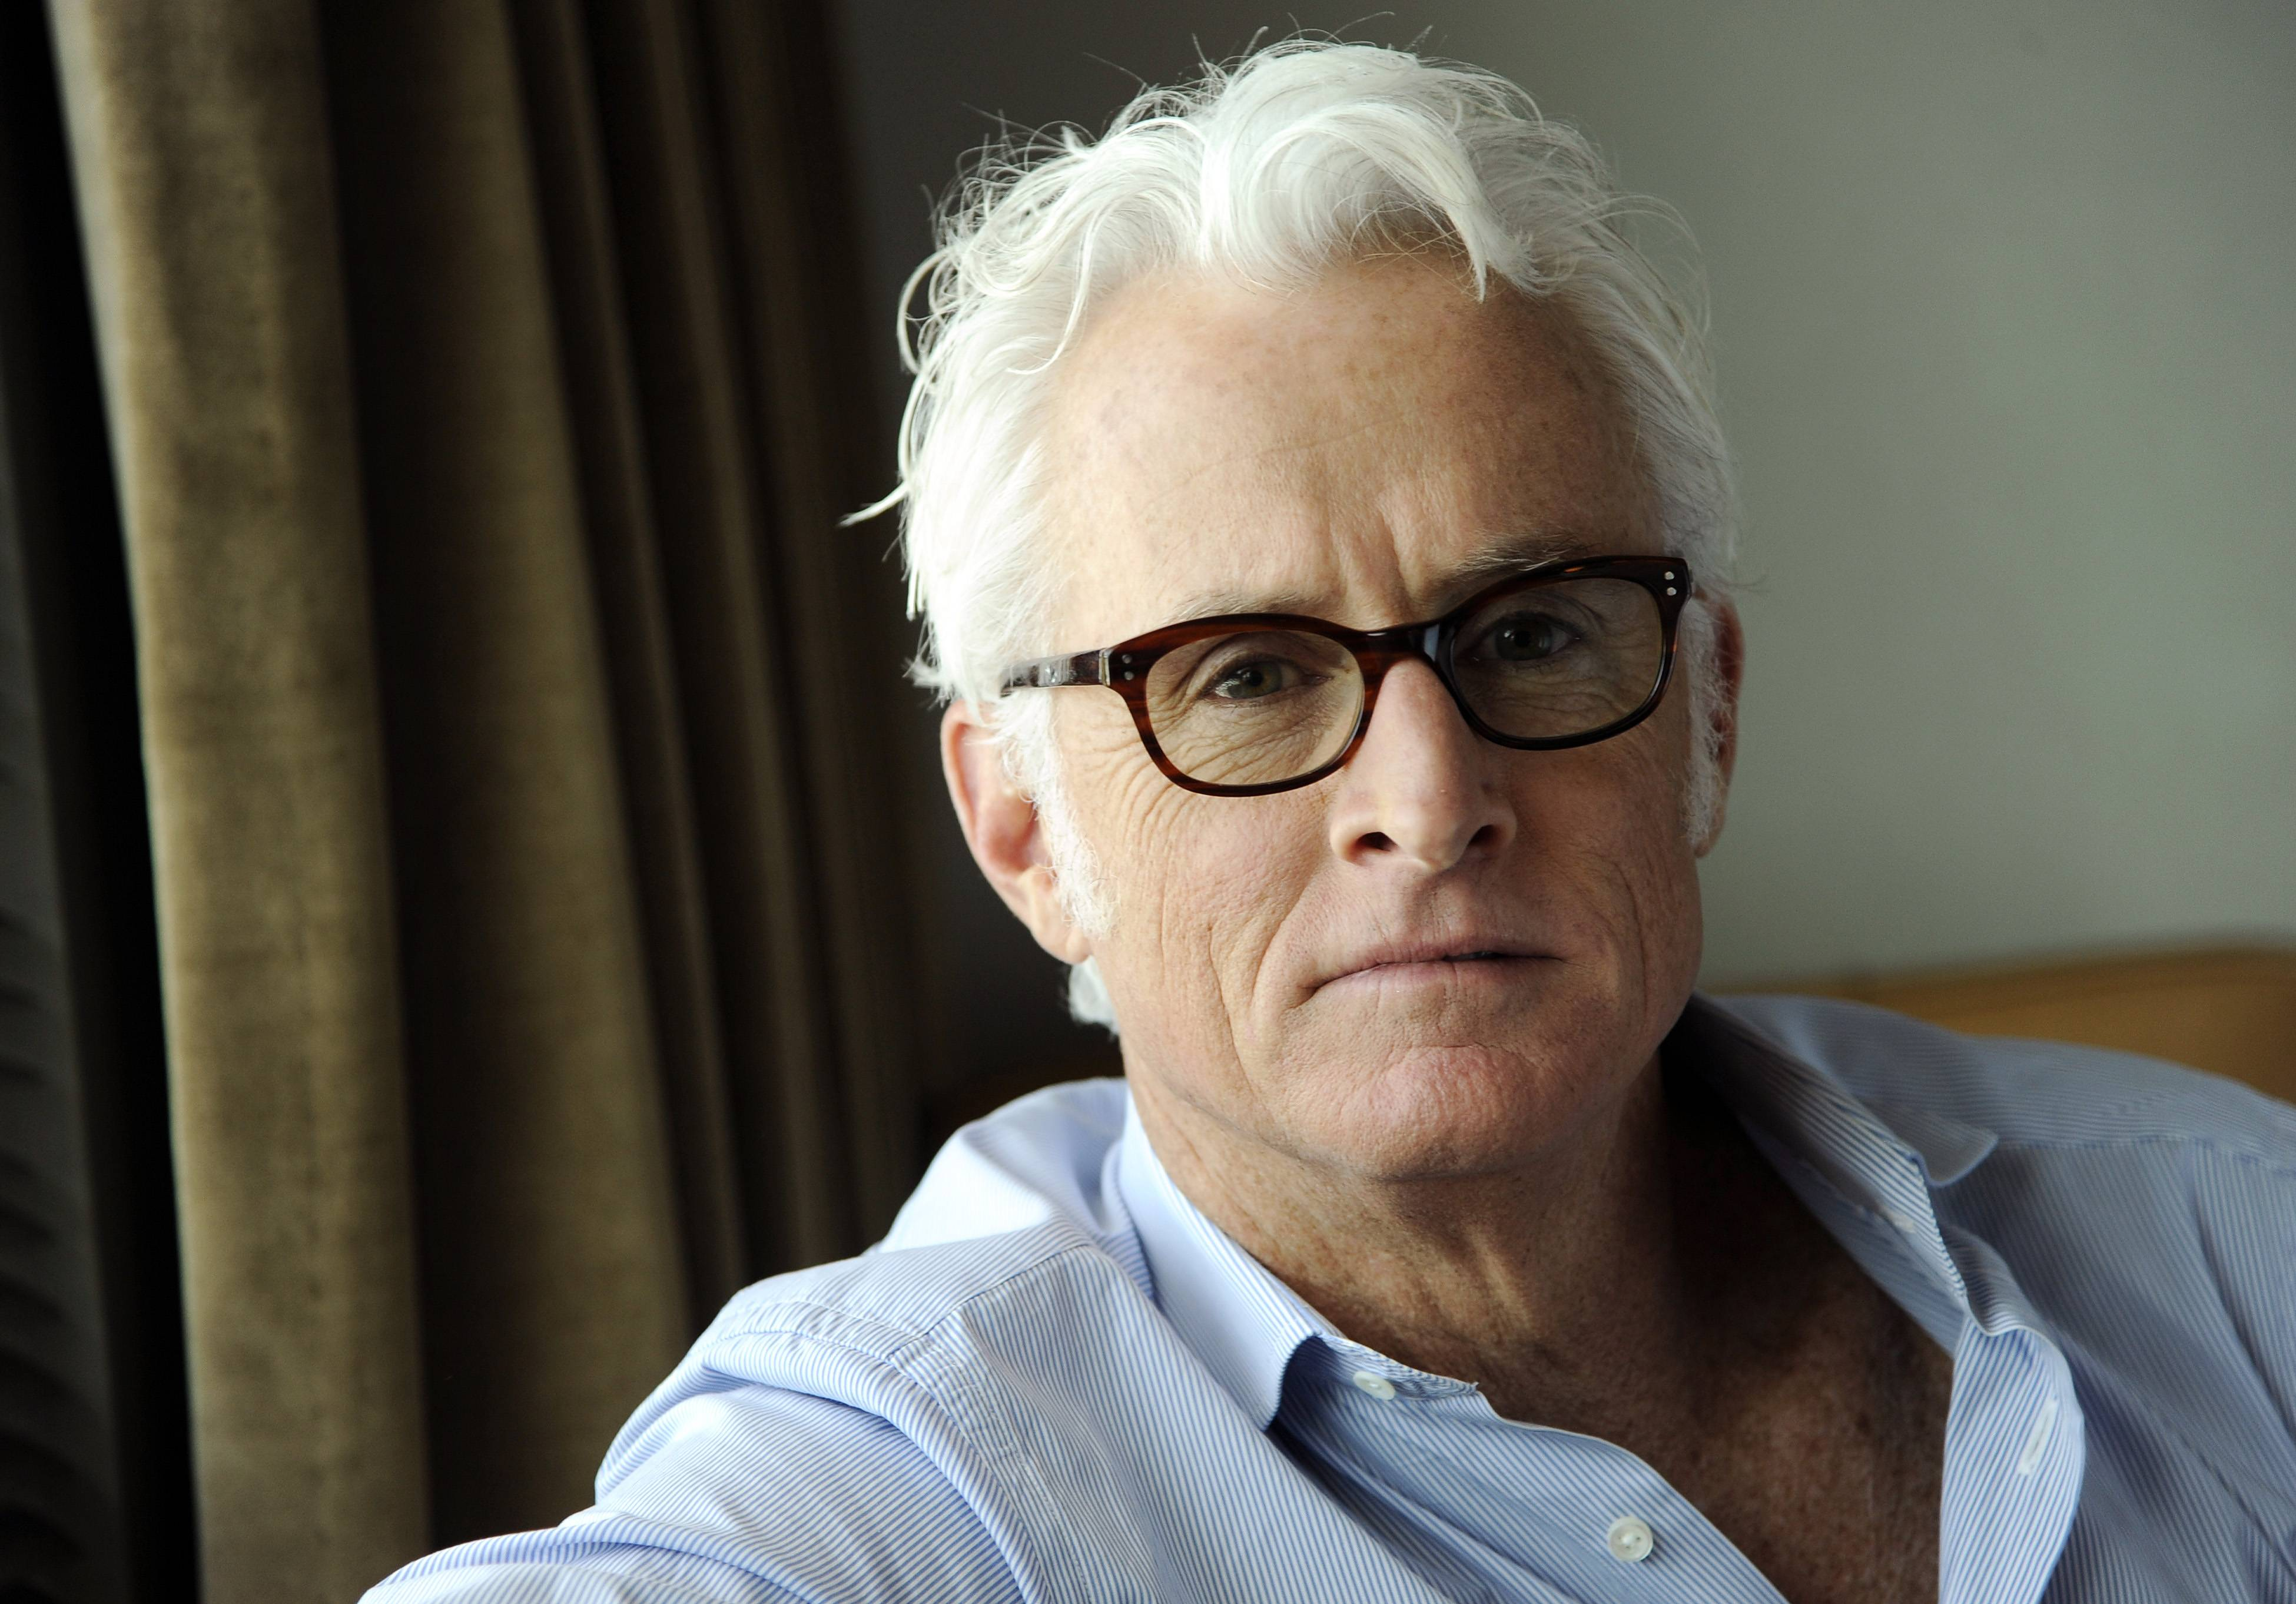 """Mad Men"" actor John Slattery makes his directorial debut with ""God's Pocket,"" a independent film based on Peter Dexter's novel about overlapping working class lives, coming to the Music Box Theatre in Chicago on May 16. It's also one of the final performances by the late Philip Seymour Hoffman."